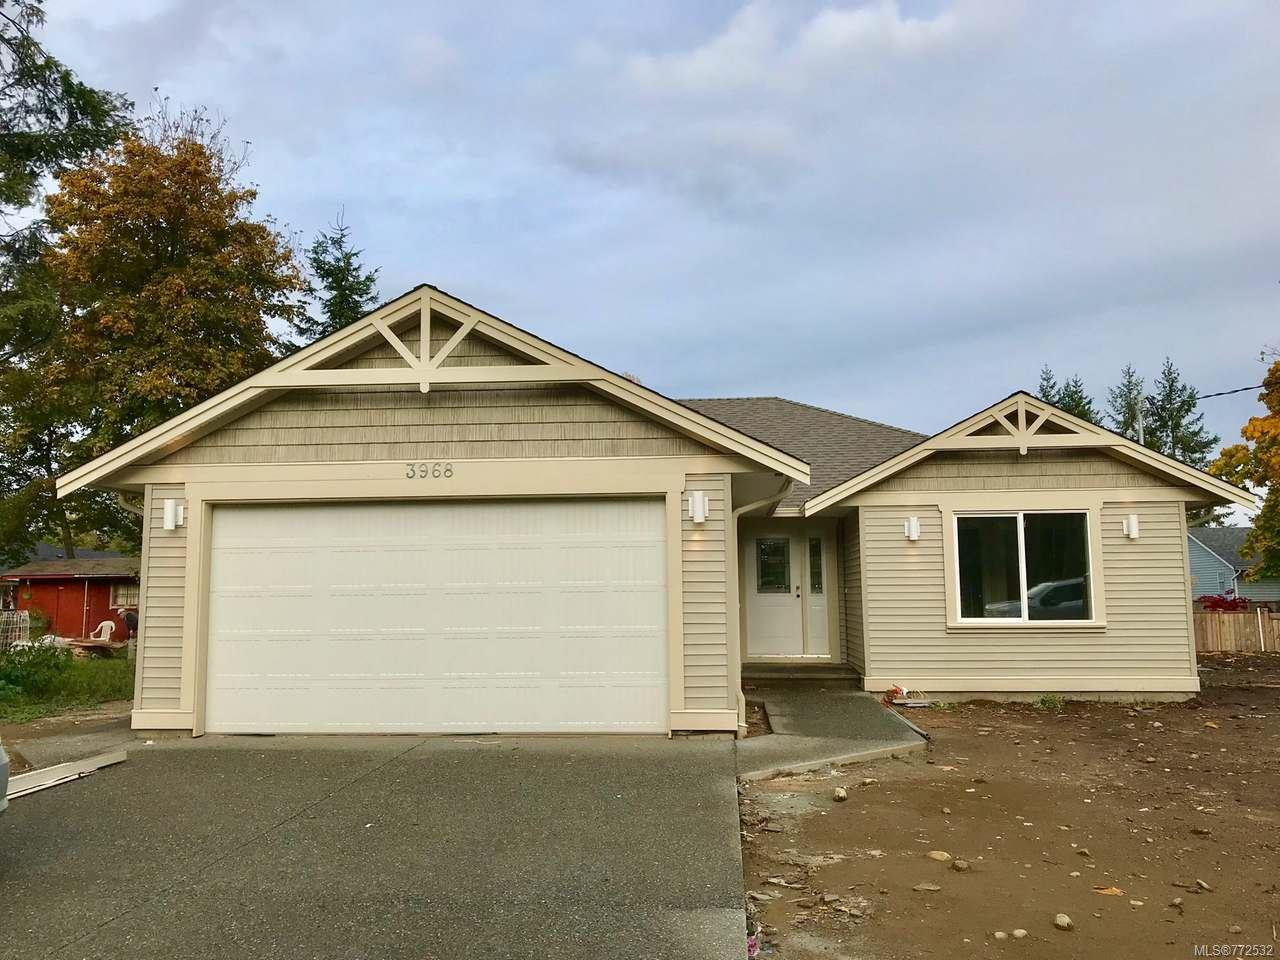 Main Photo: 3968 Leeming Rd in CAMPBELL RIVER: CR Campbell River South House for sale (Campbell River)  : MLS®# 772532